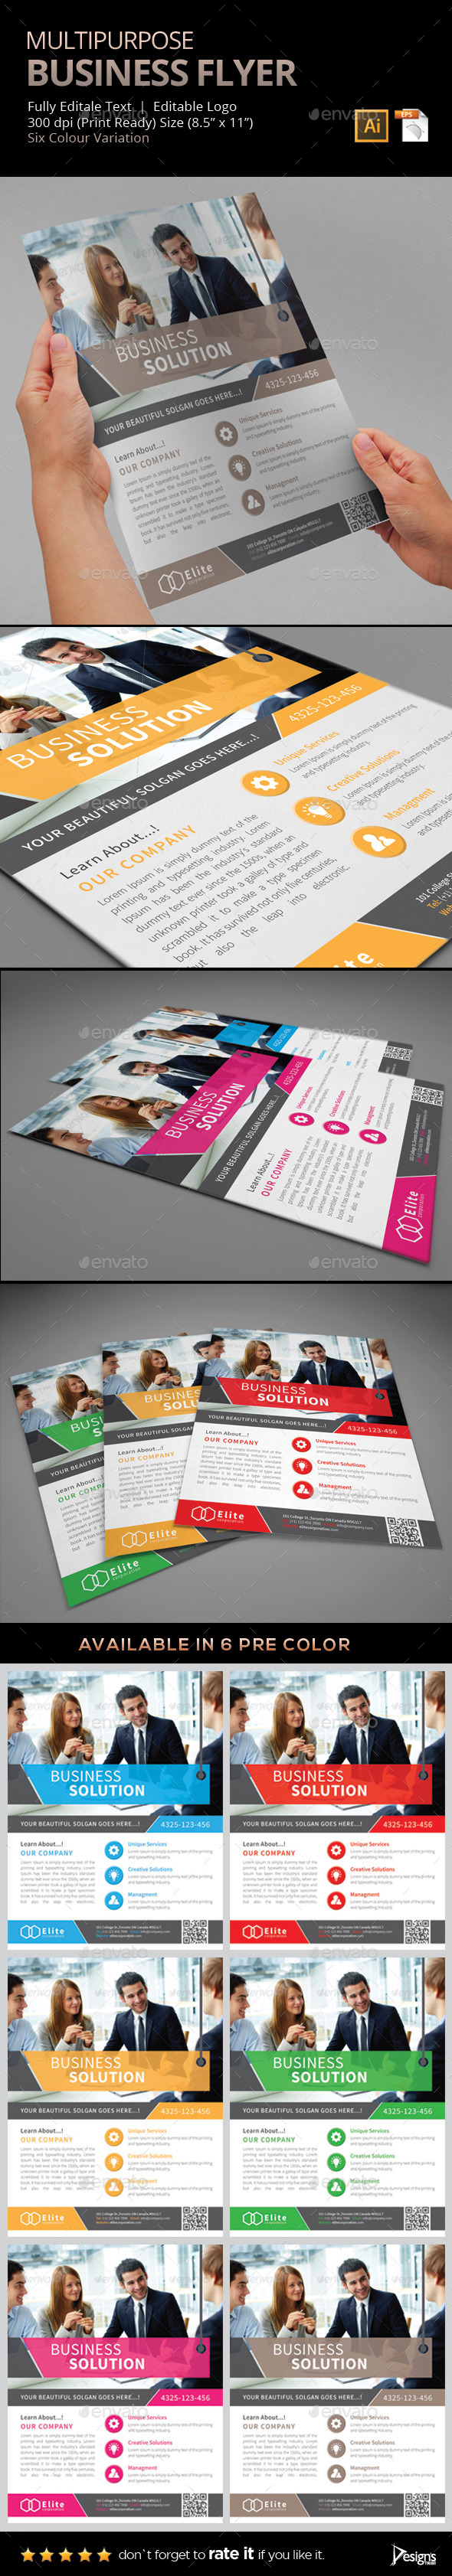 Flyer - Multipurpose Business Flyer 7 - Flyers Print Templates